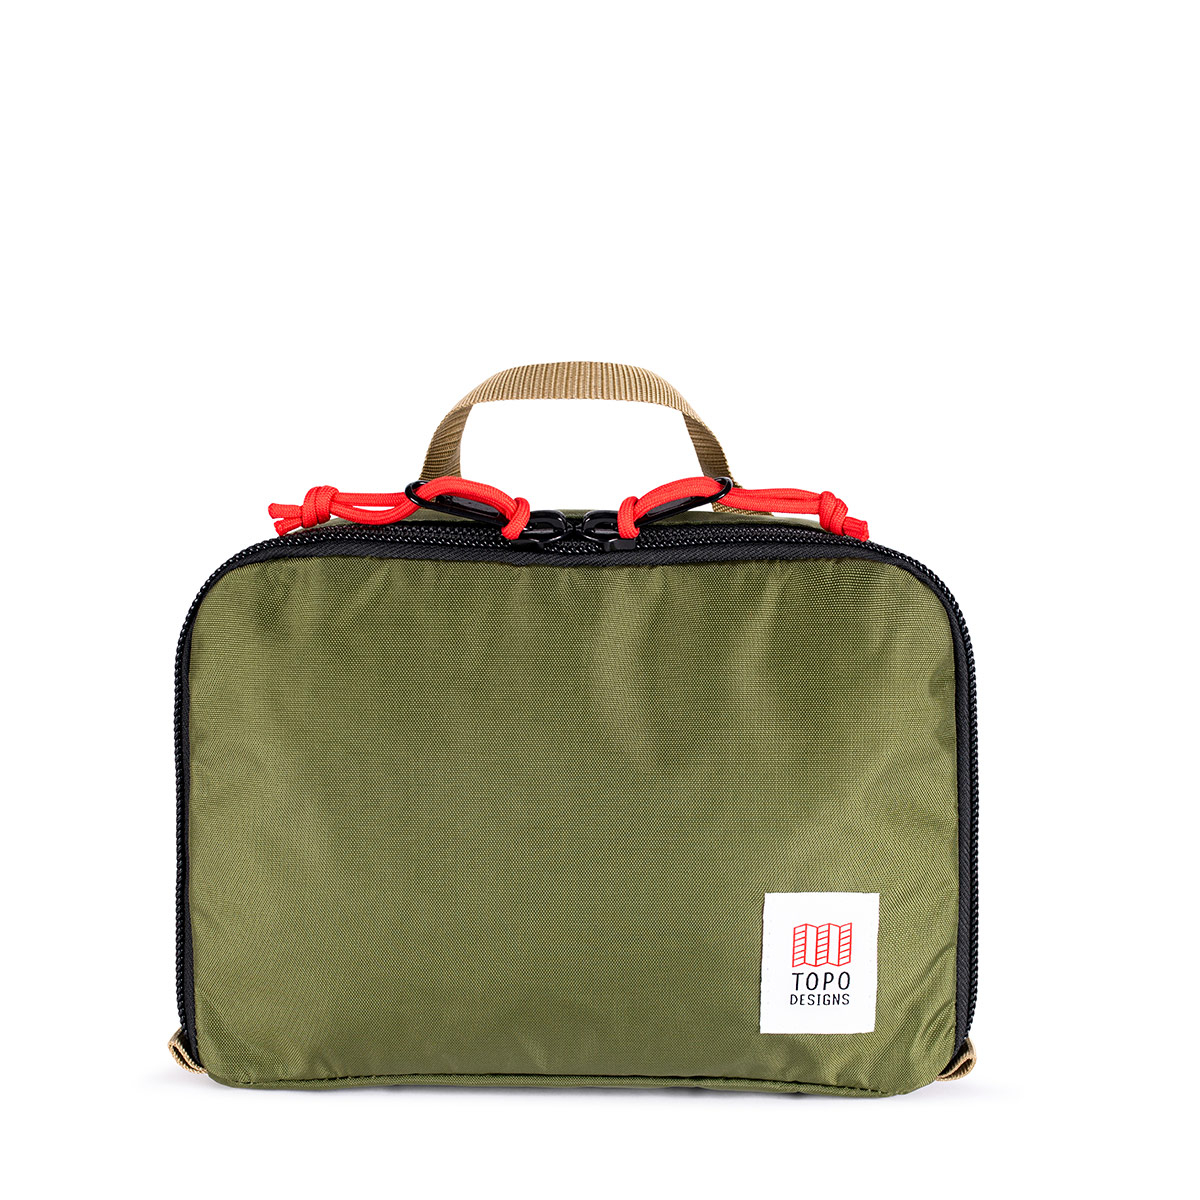 Topo Designs Pack Bag 5L Olive, a simple, durable and highly functional way to organize your luggage